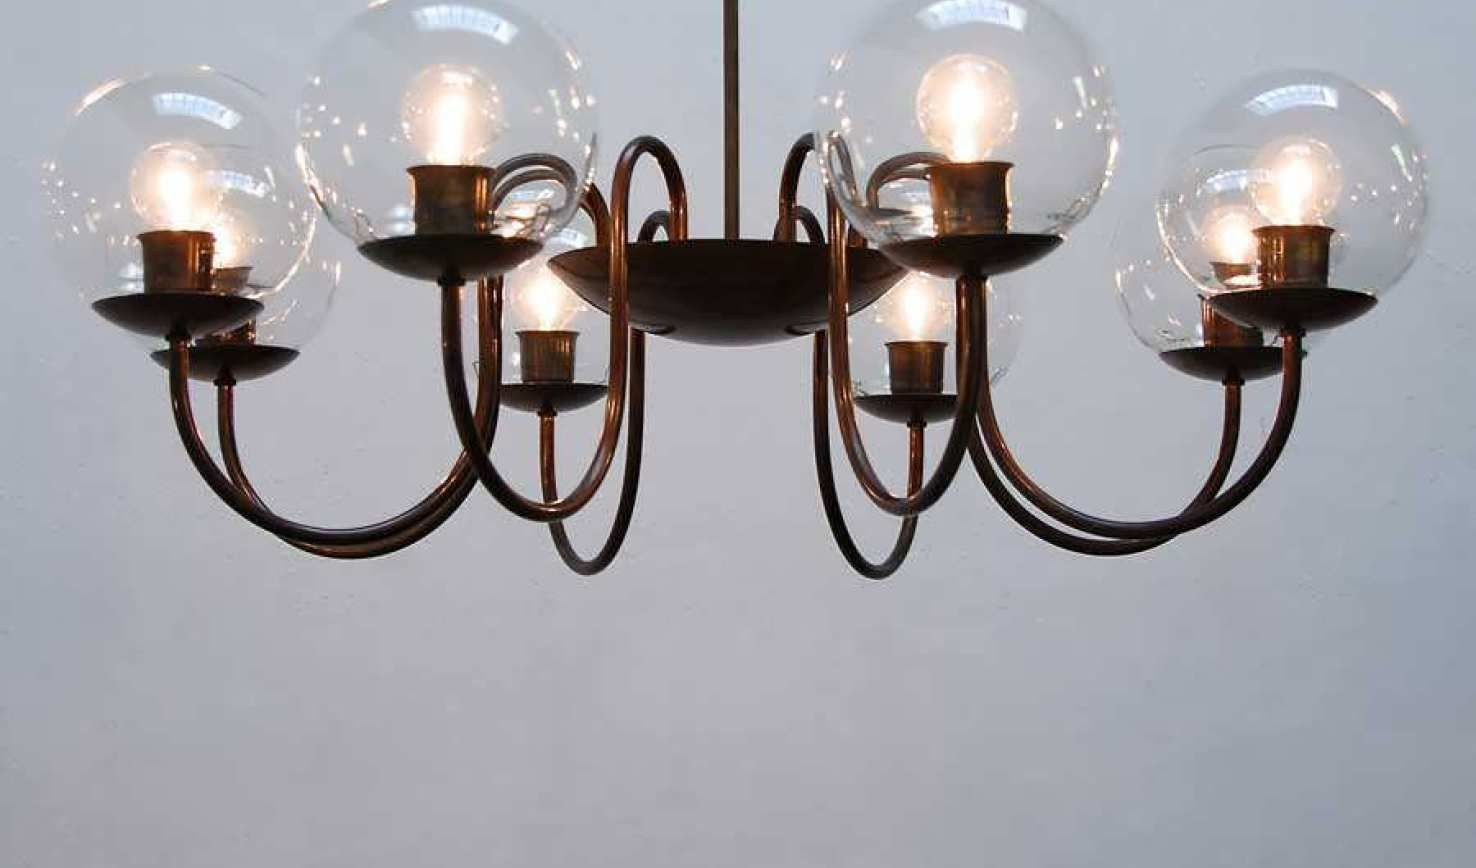 Chandelier Replacement Chandelier Globes Drum Hanging Lamp Shades Glass For Ceiling Lights Light Glo Hanging Lamp Shade Ceiling Lights Replacement Glass Shades